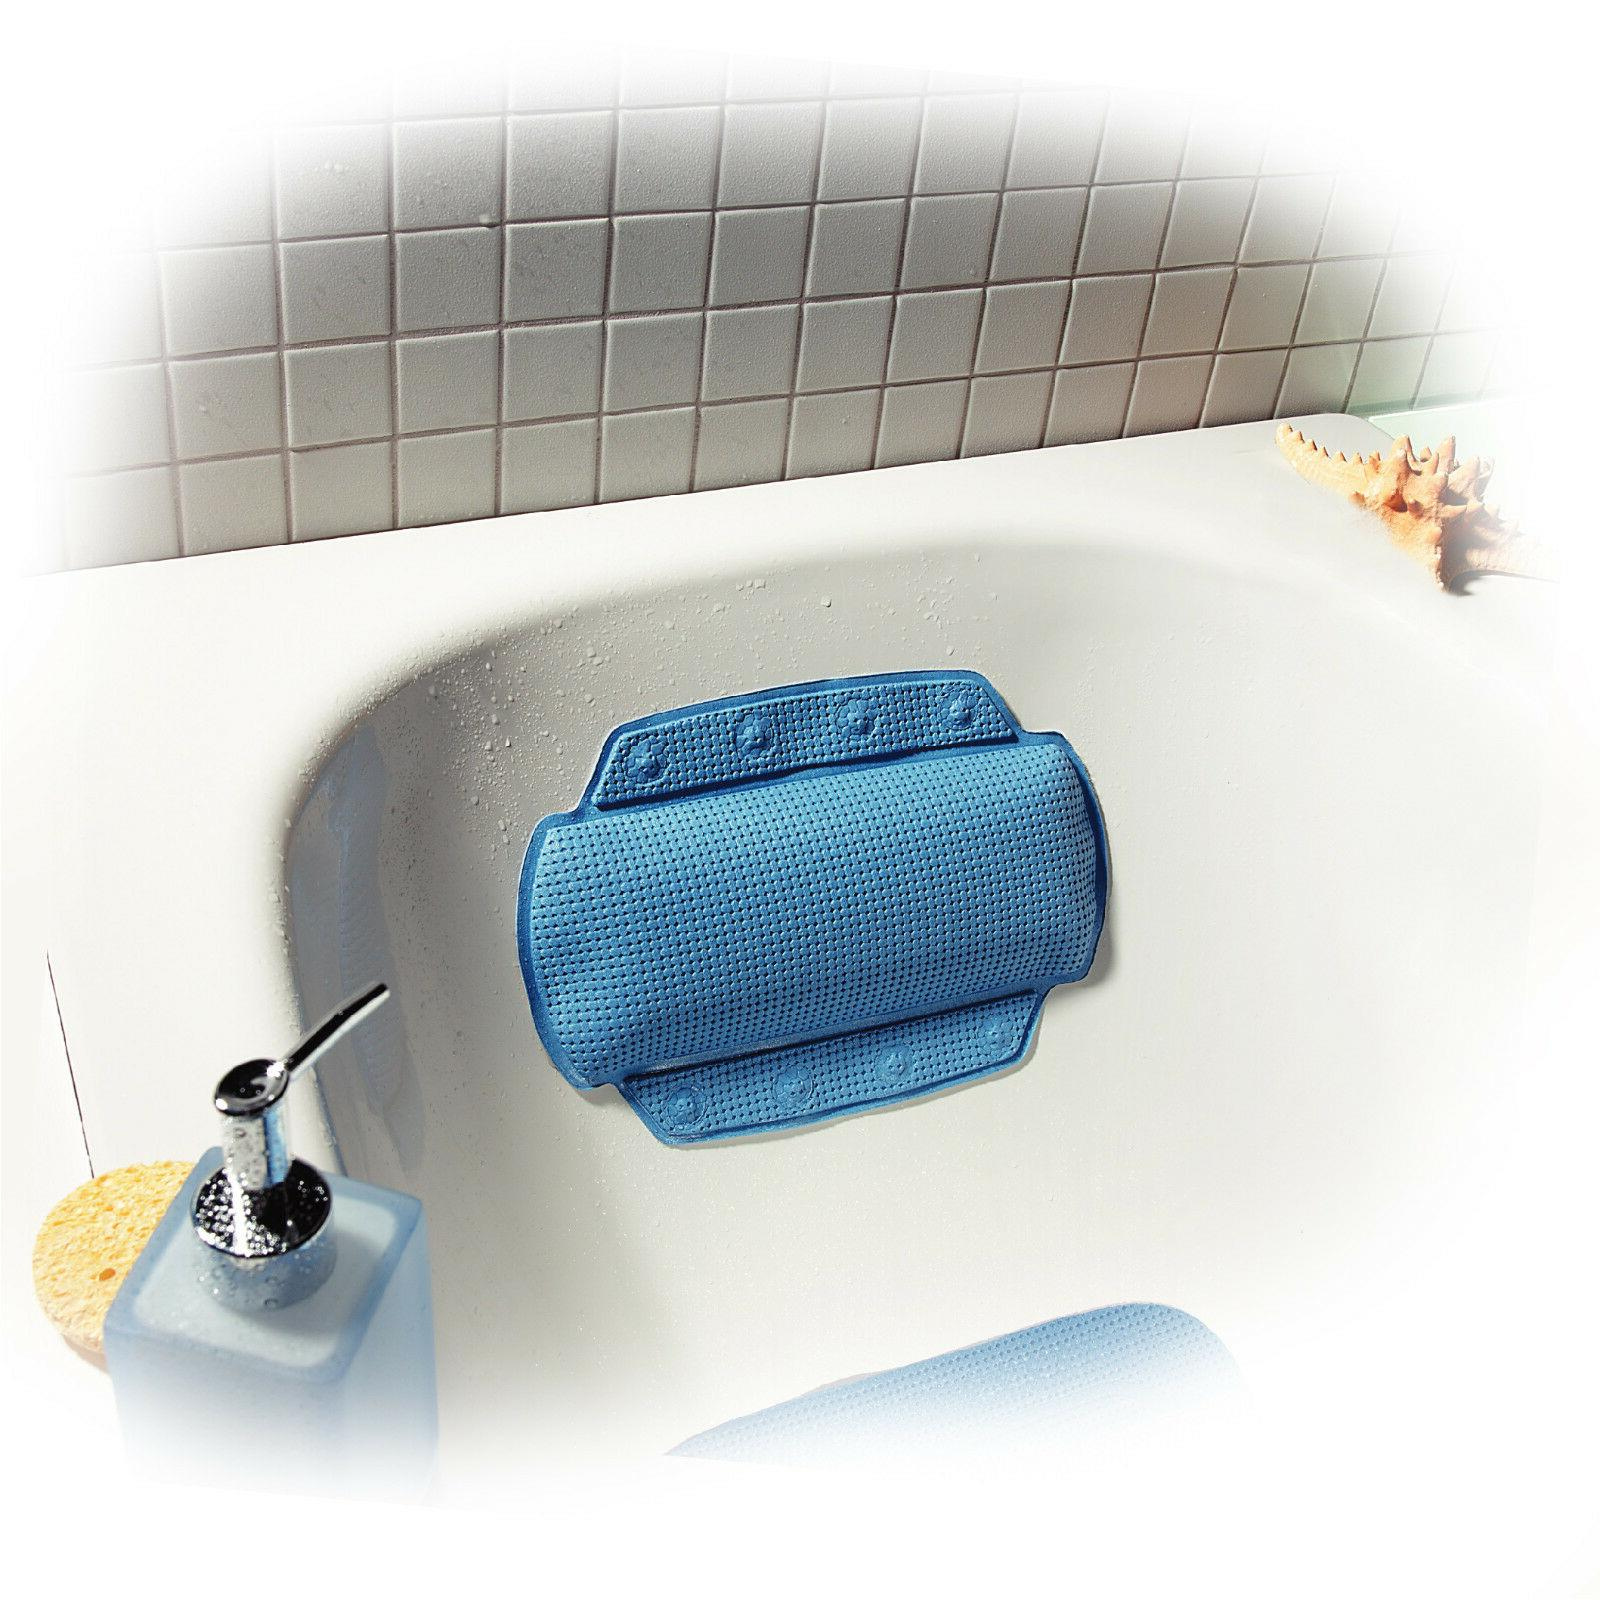 Spirella Anti Slip SOFT Shower Tray Safety BATH Suction